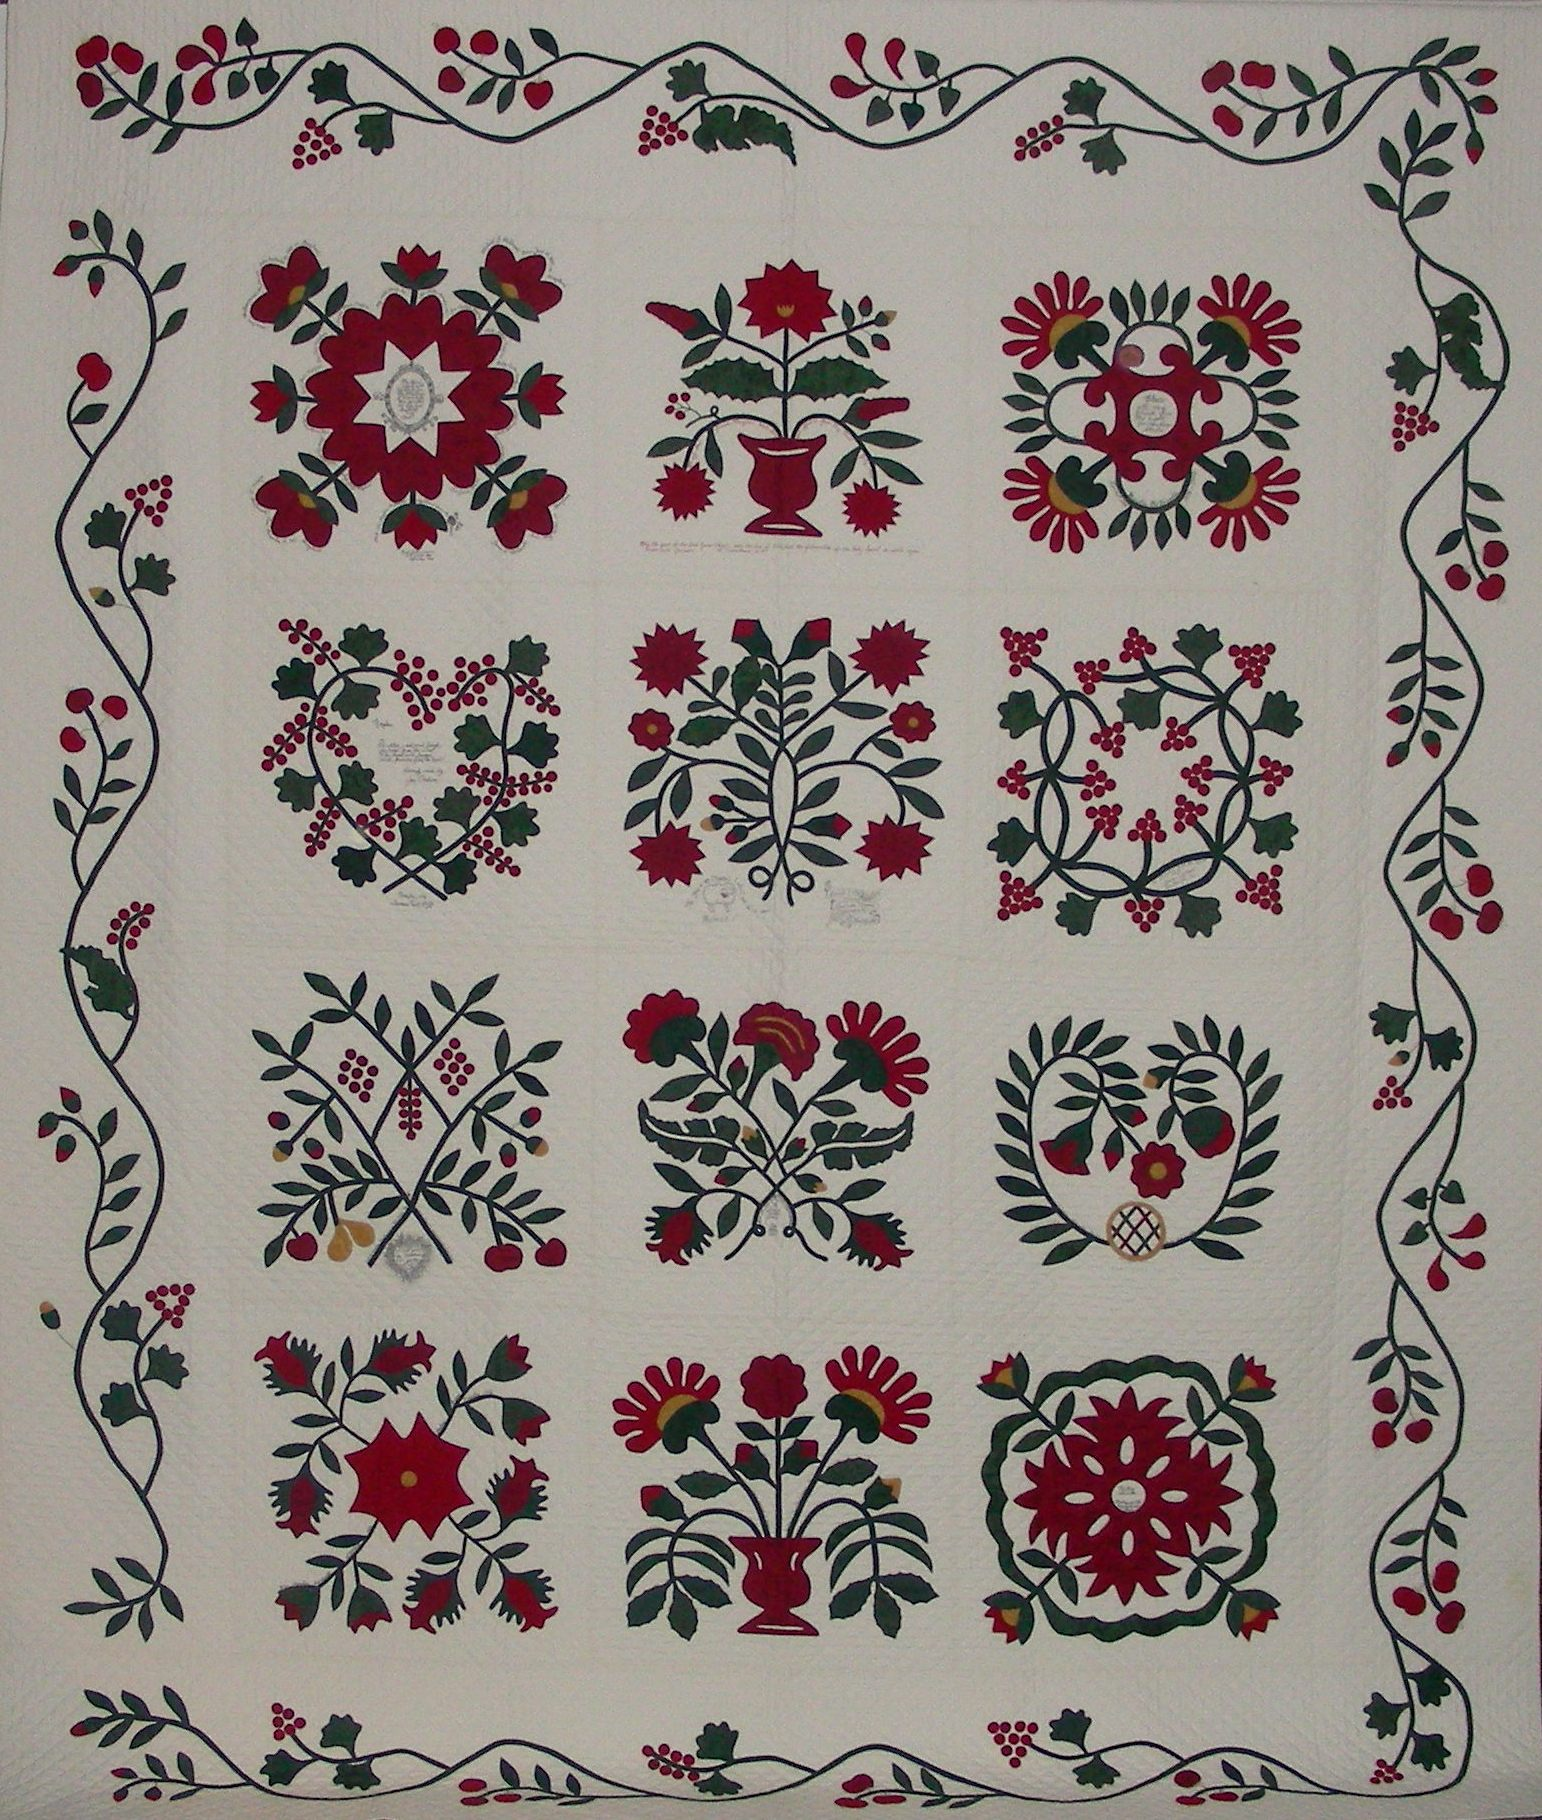 05Mary Mannakee Quilt.jpg - Mary Mannakee Quilt